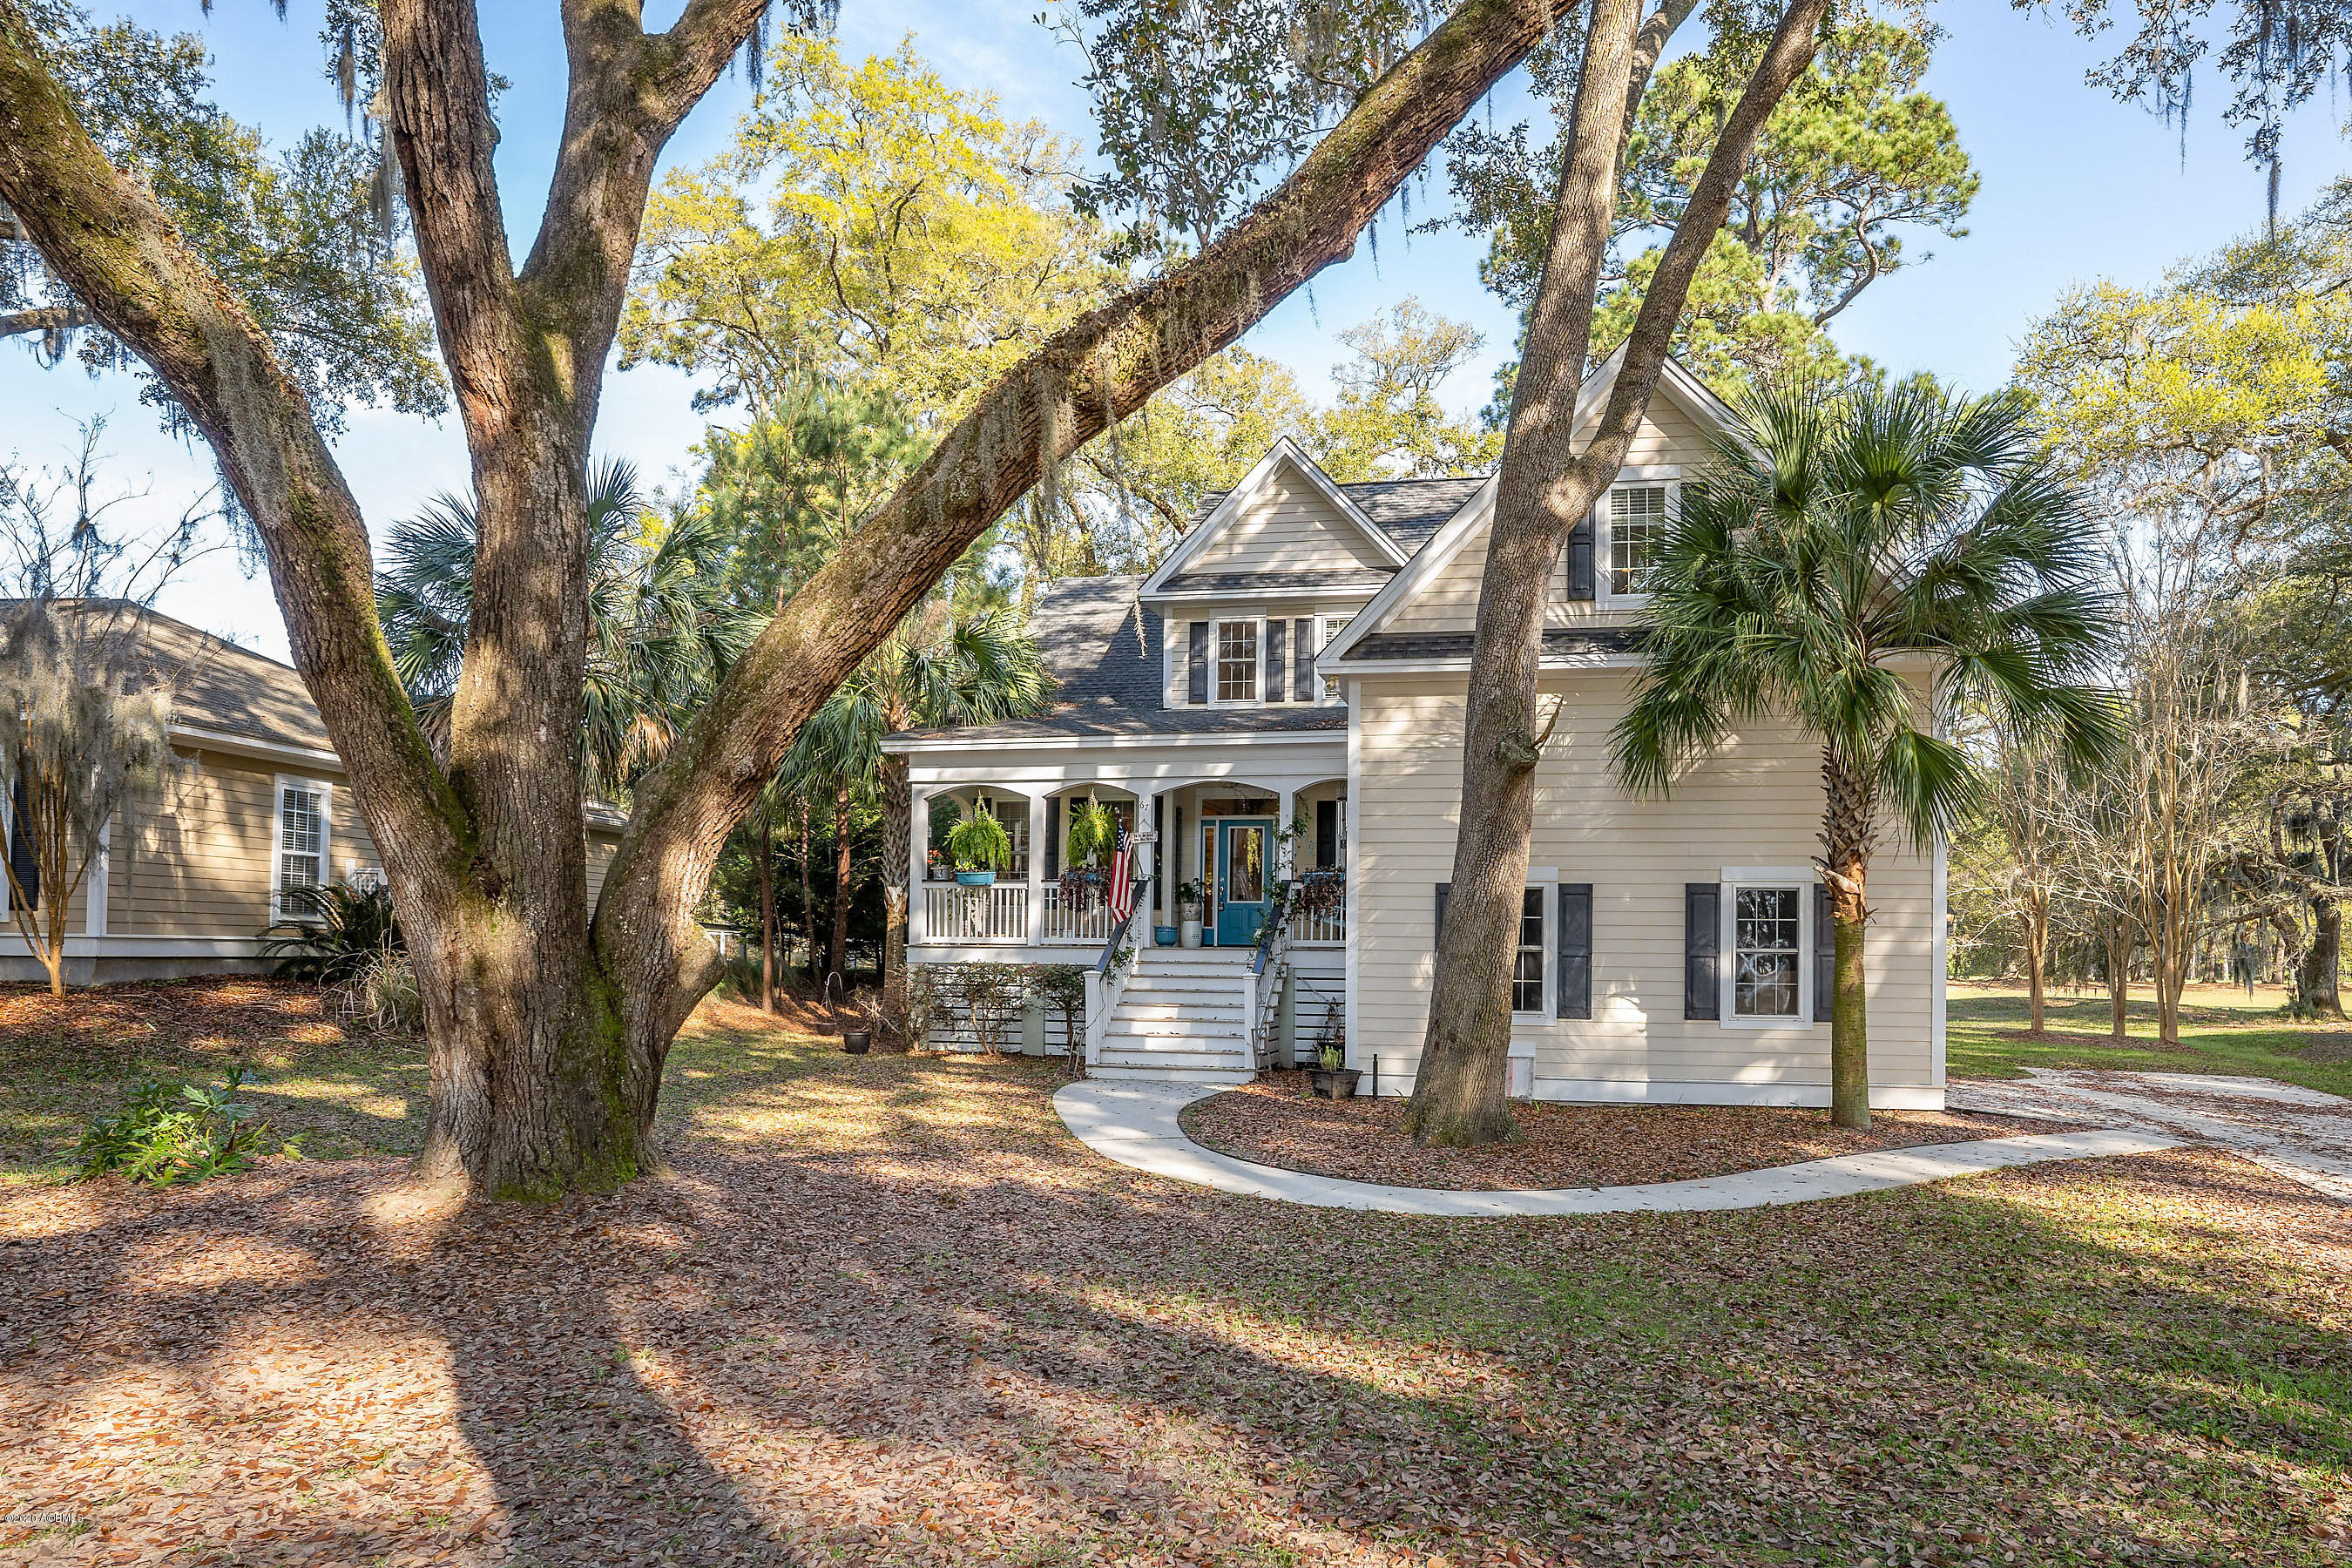 Photo of 67 Downing Drive, Beaufort, SC 29907